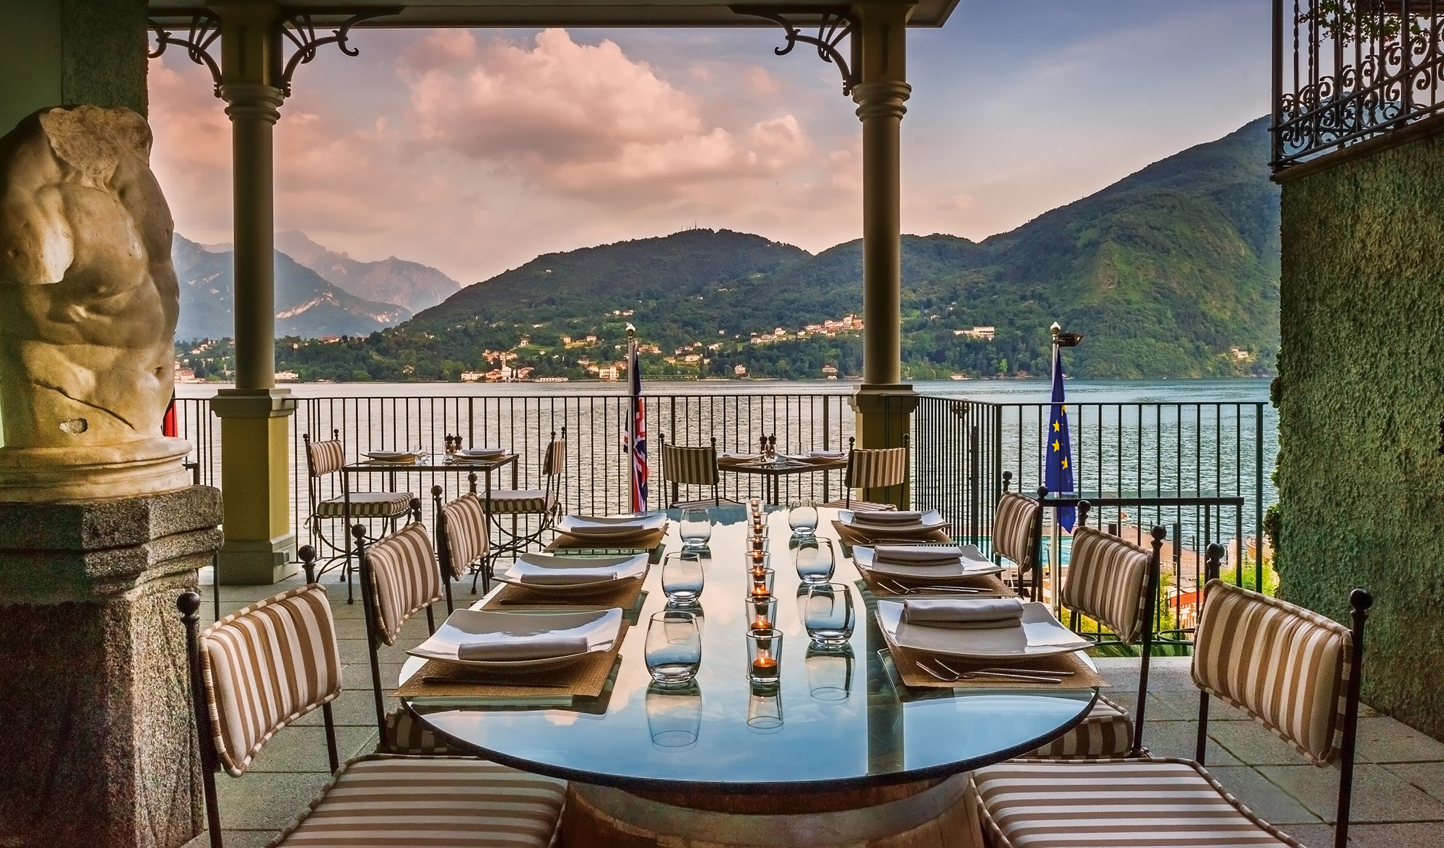 Dinner with a view at L'Escale Trattoria